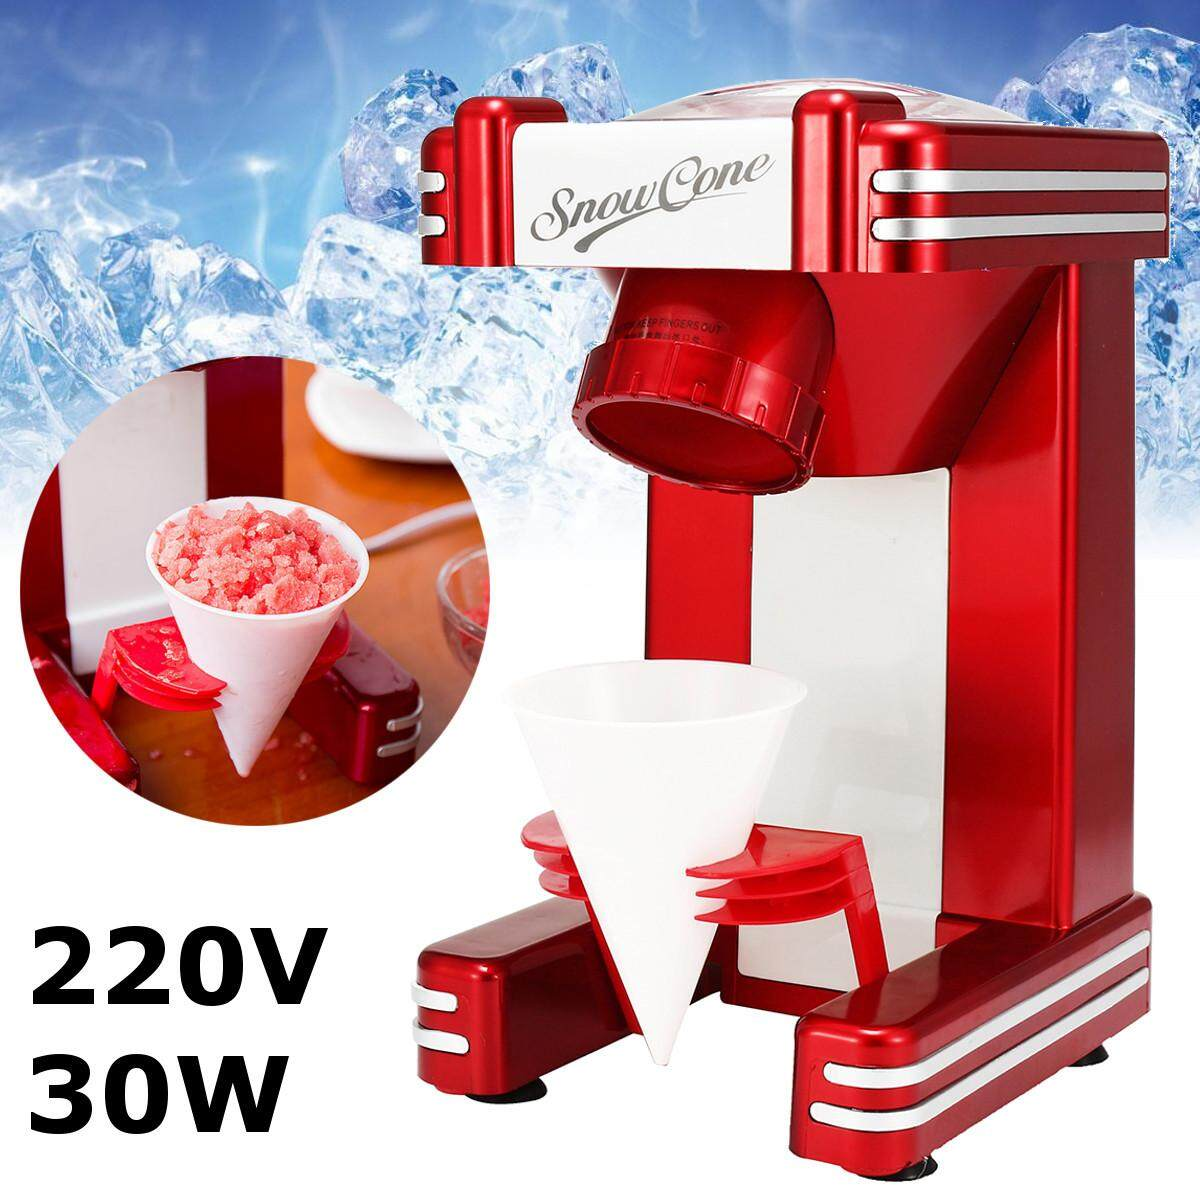 Electric Ice Shaver Crusher Machine Snow Cone Maker Crusher Shaving Cold Drink With Two Plastic Cone Cup By Moonbeam.